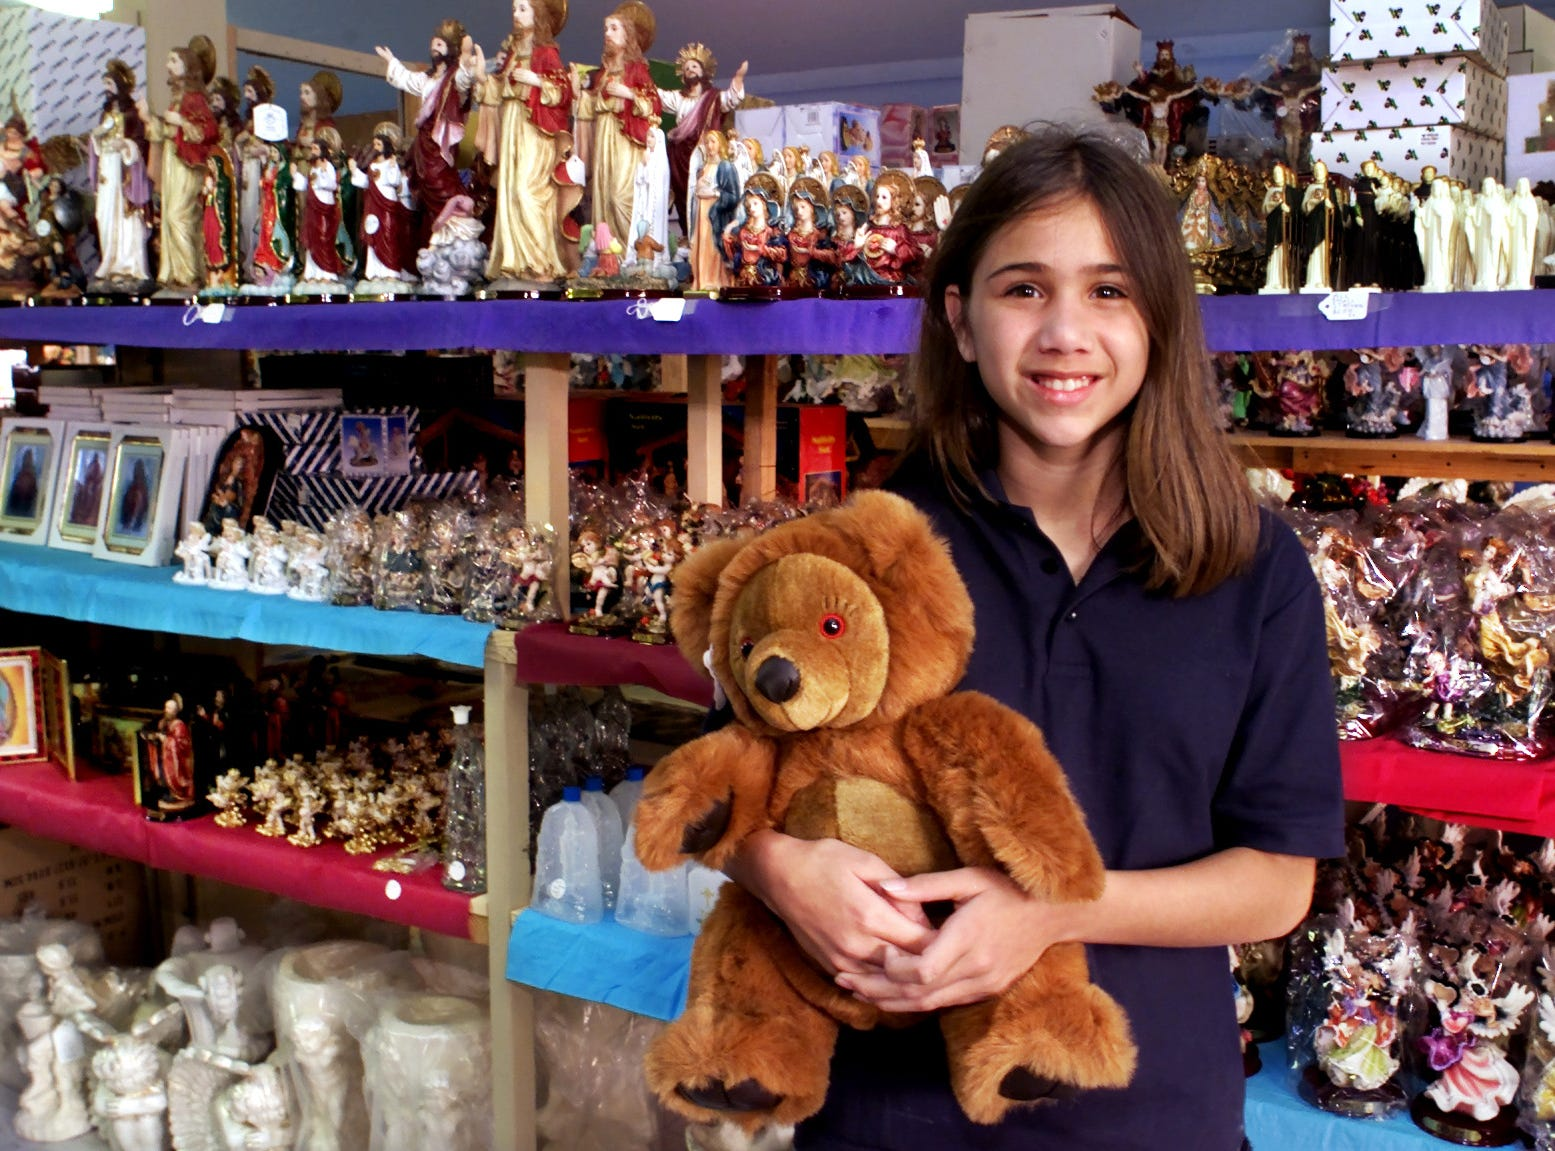 11-yr-old Ariana Camina holds a Bluebell Bear in St. Jude's House of Angels inside Texas Sky Festival Park on Jurica Road in October 2000. The bear recites a prayer and is one of many religious and spiritual items sold at the store.